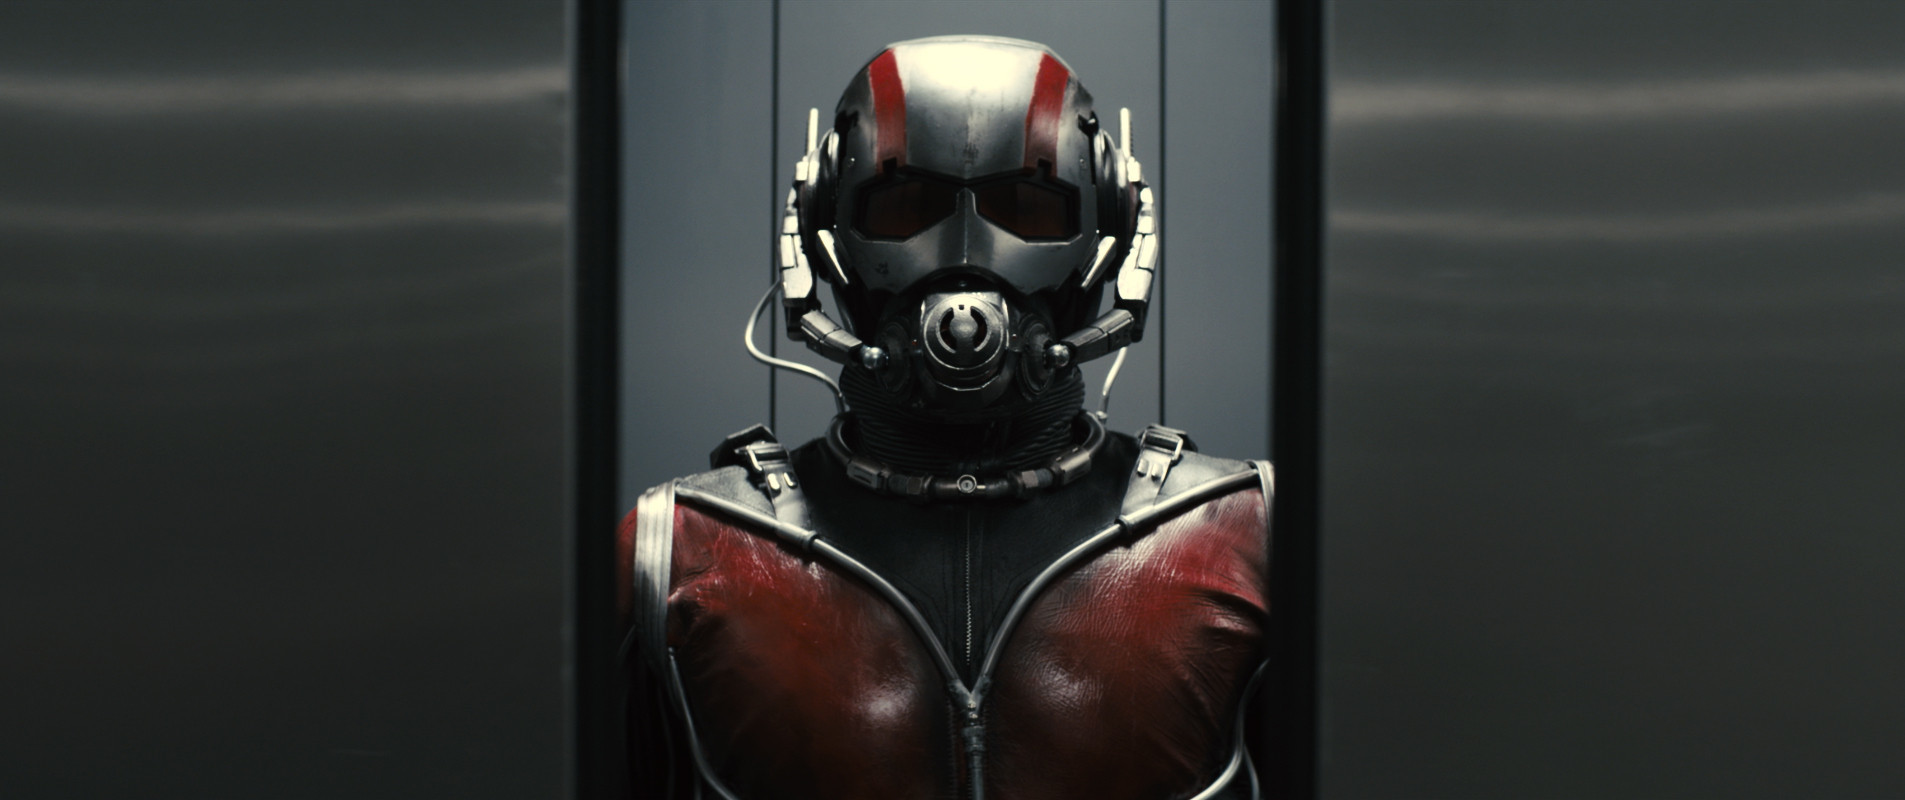 ant man - photo #22